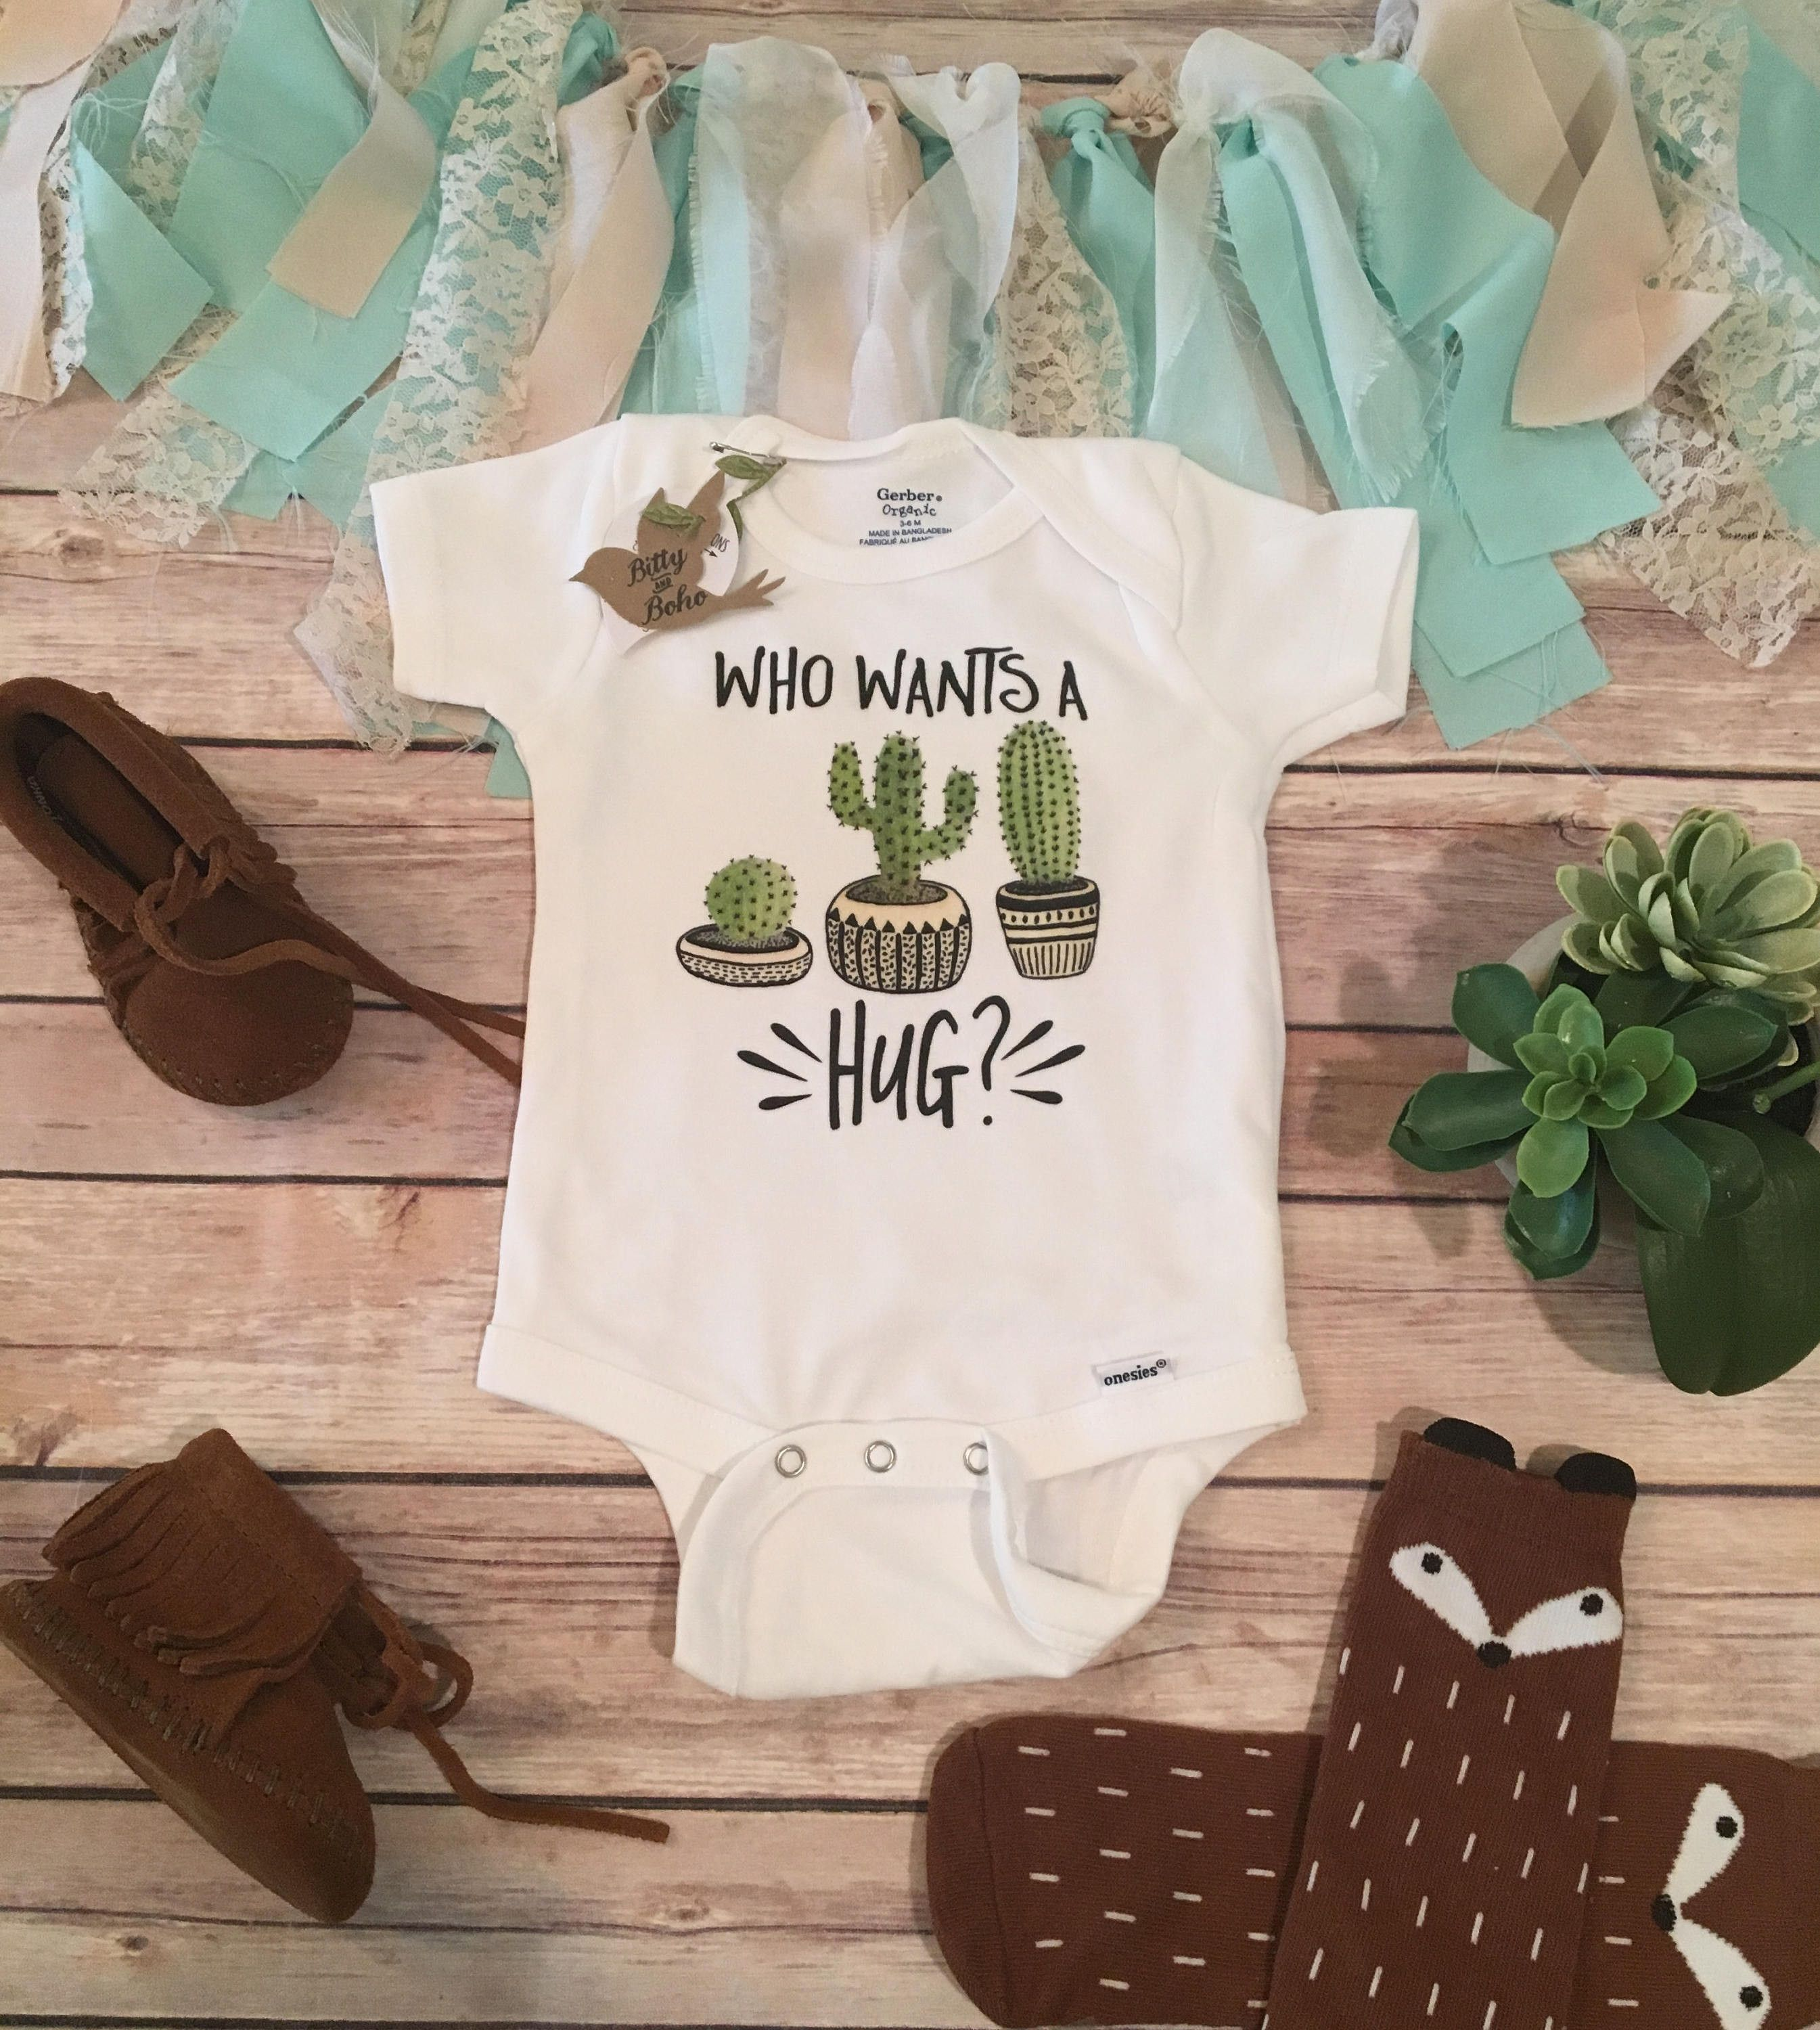 9a3a79cca Who Wants a Hug? - Cactus Onesie®   widdle babies   Hipster baby ...